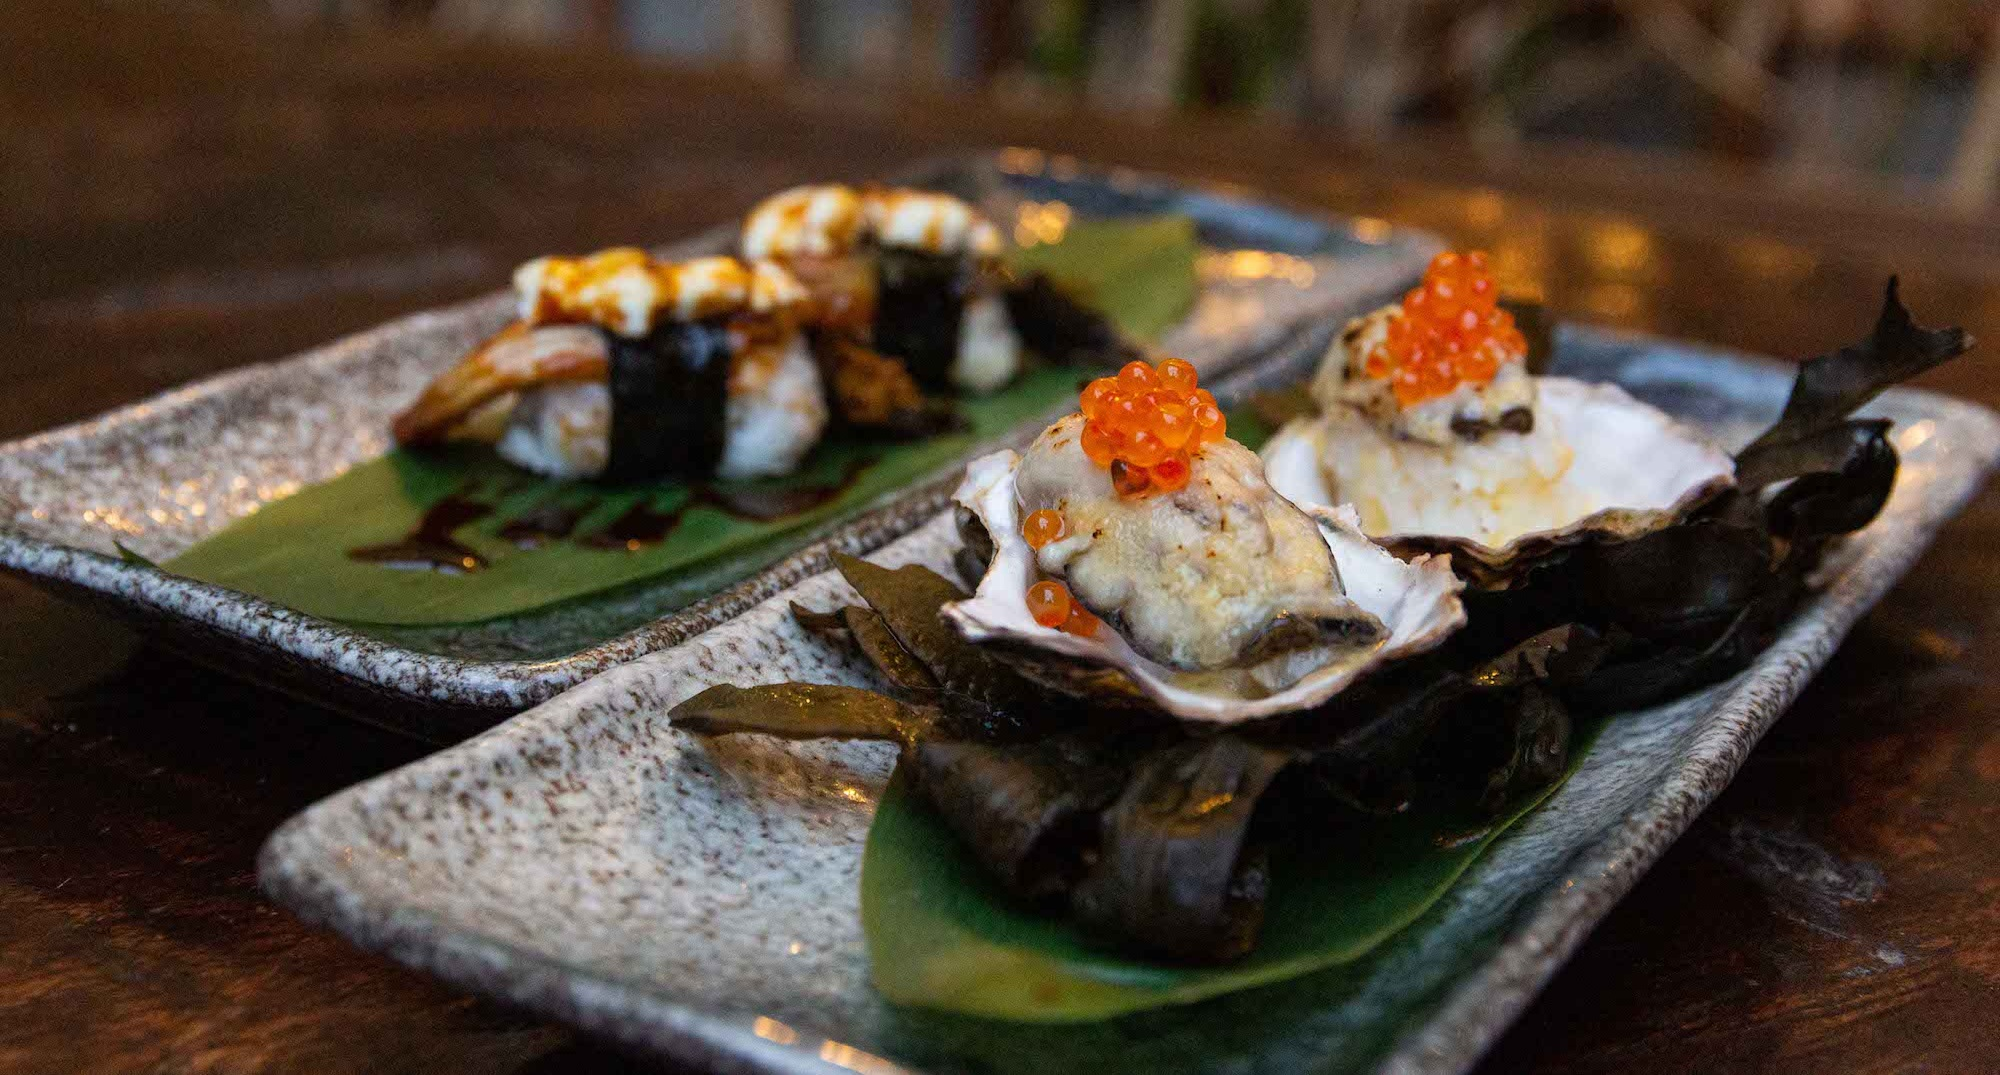 Grilled eel nigiri with torched goat's cheese (back), and Grilled Oysters with Masago over Irish Seaweed and Banana Leaf